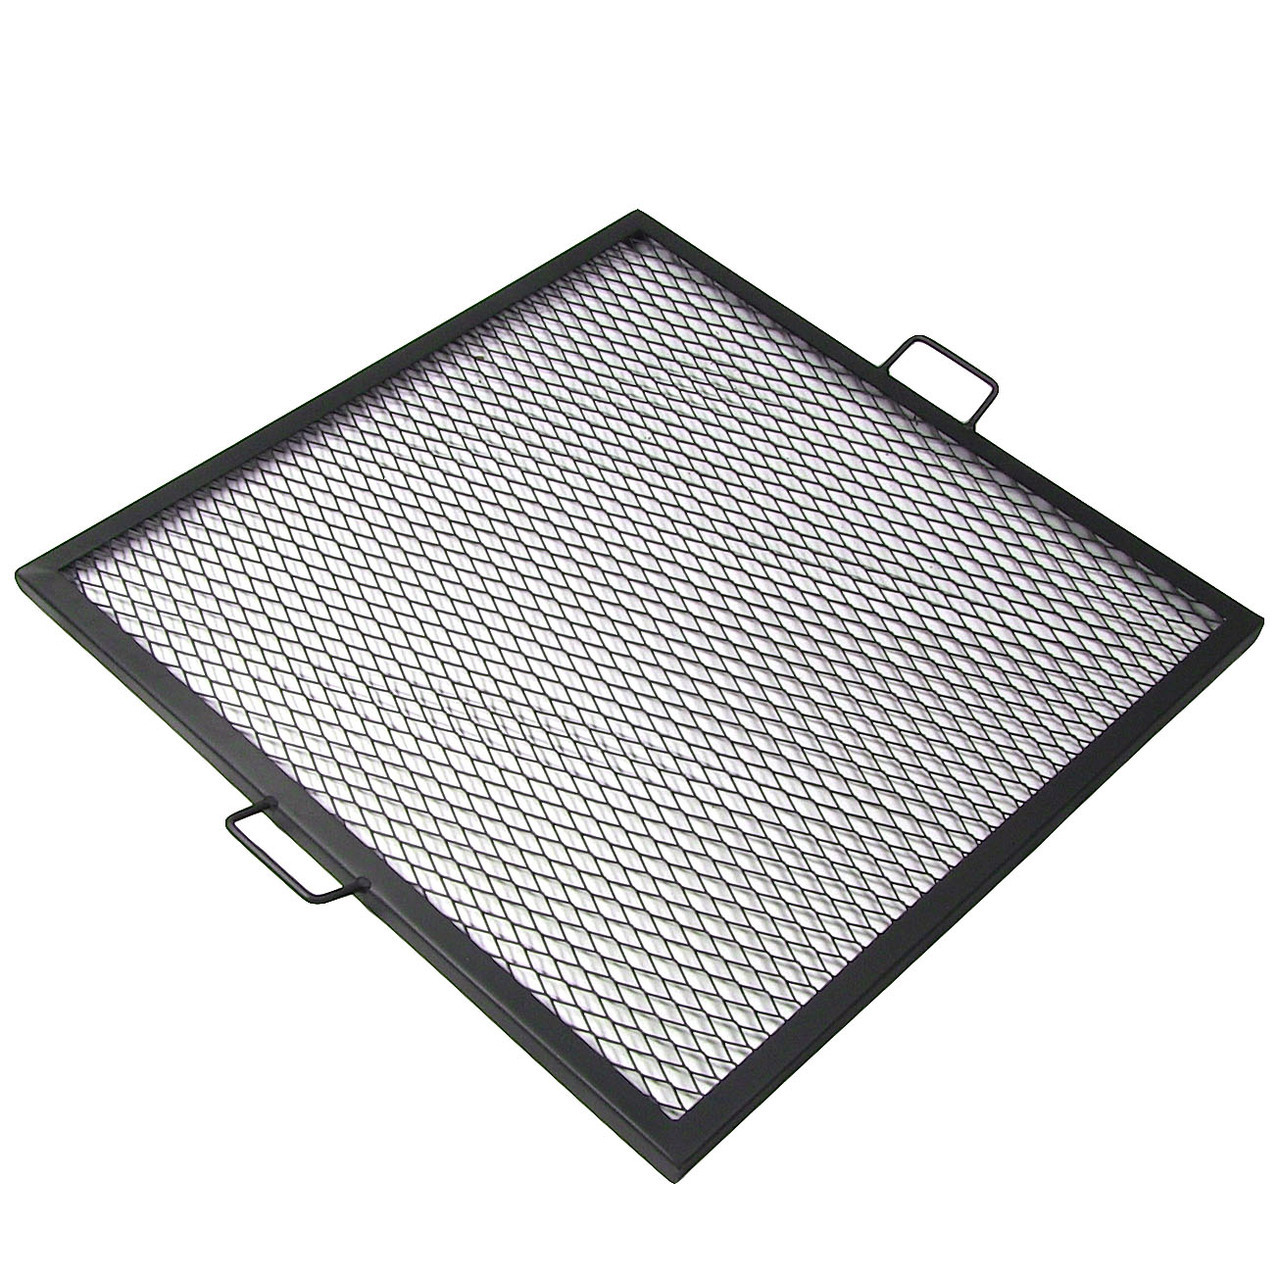 X-Marks Square Fire Pit Cooking Grill, Durable Steel Grate ...